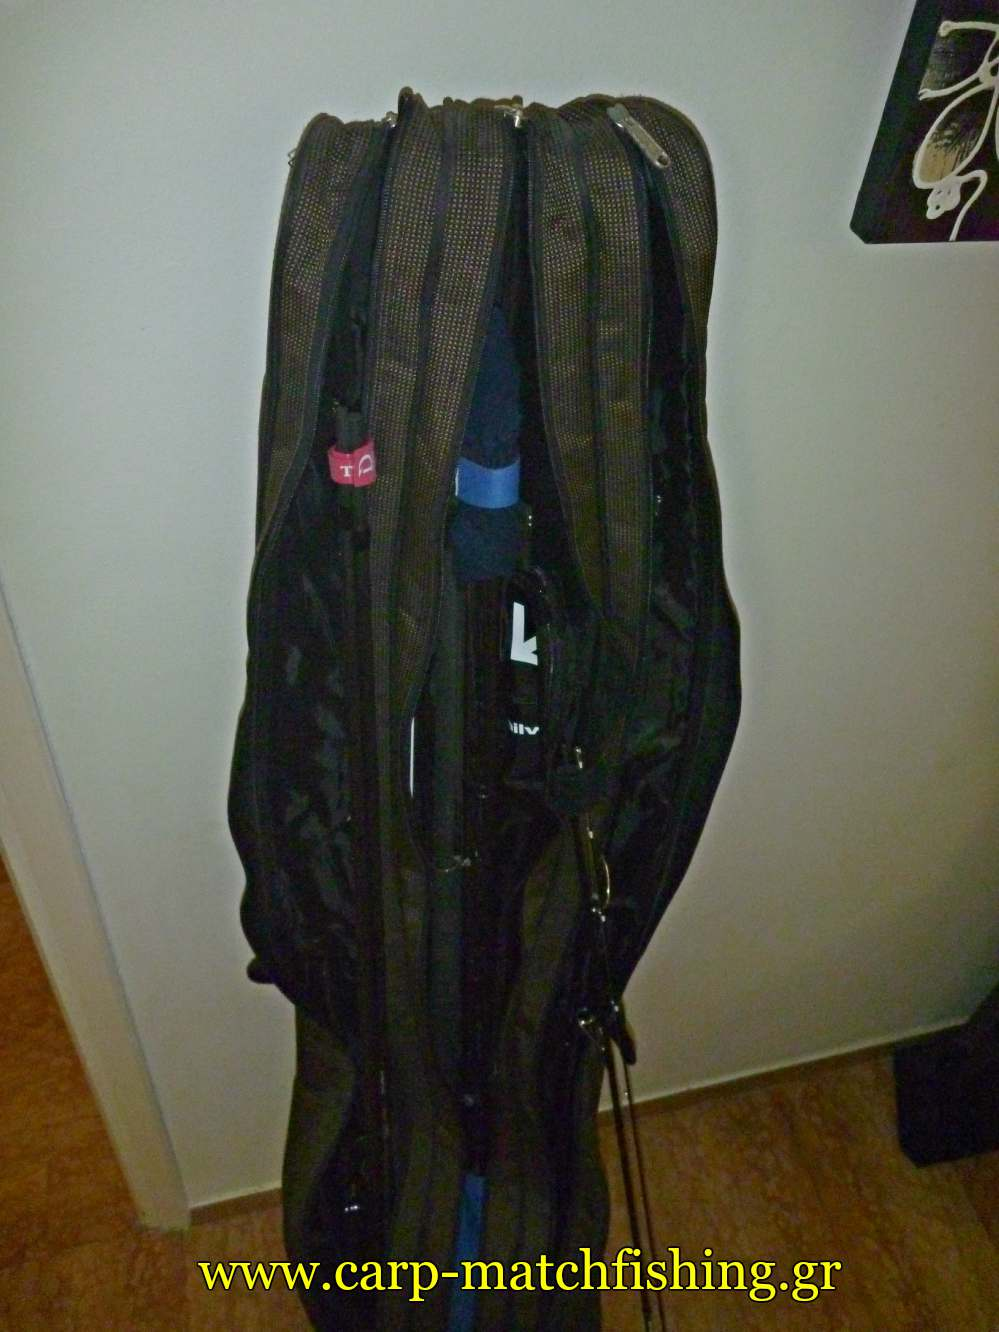 rod-protection-rod-holdall-carpmatchfishing